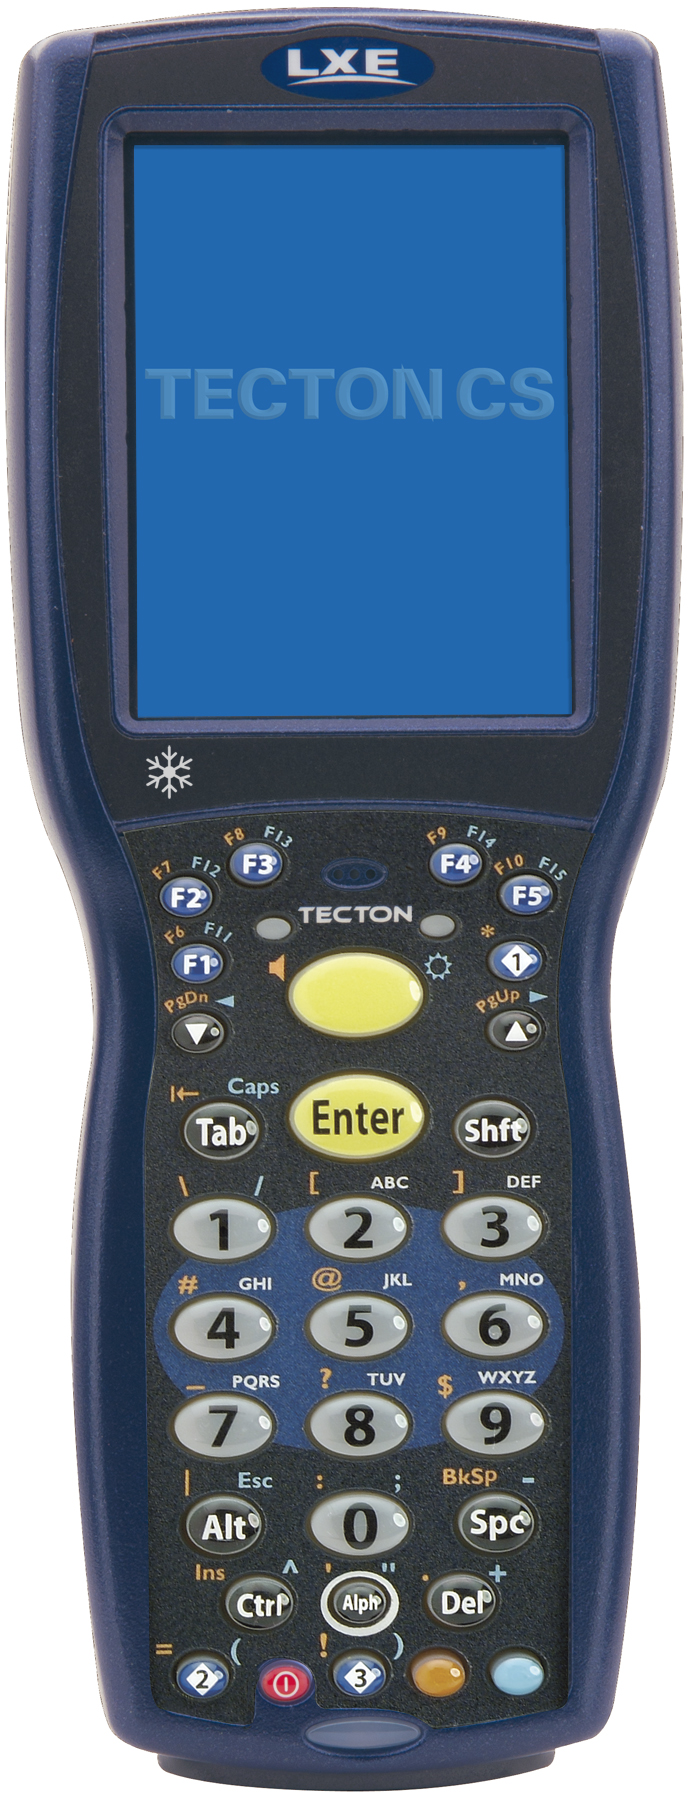 Honeywell Tecton CS